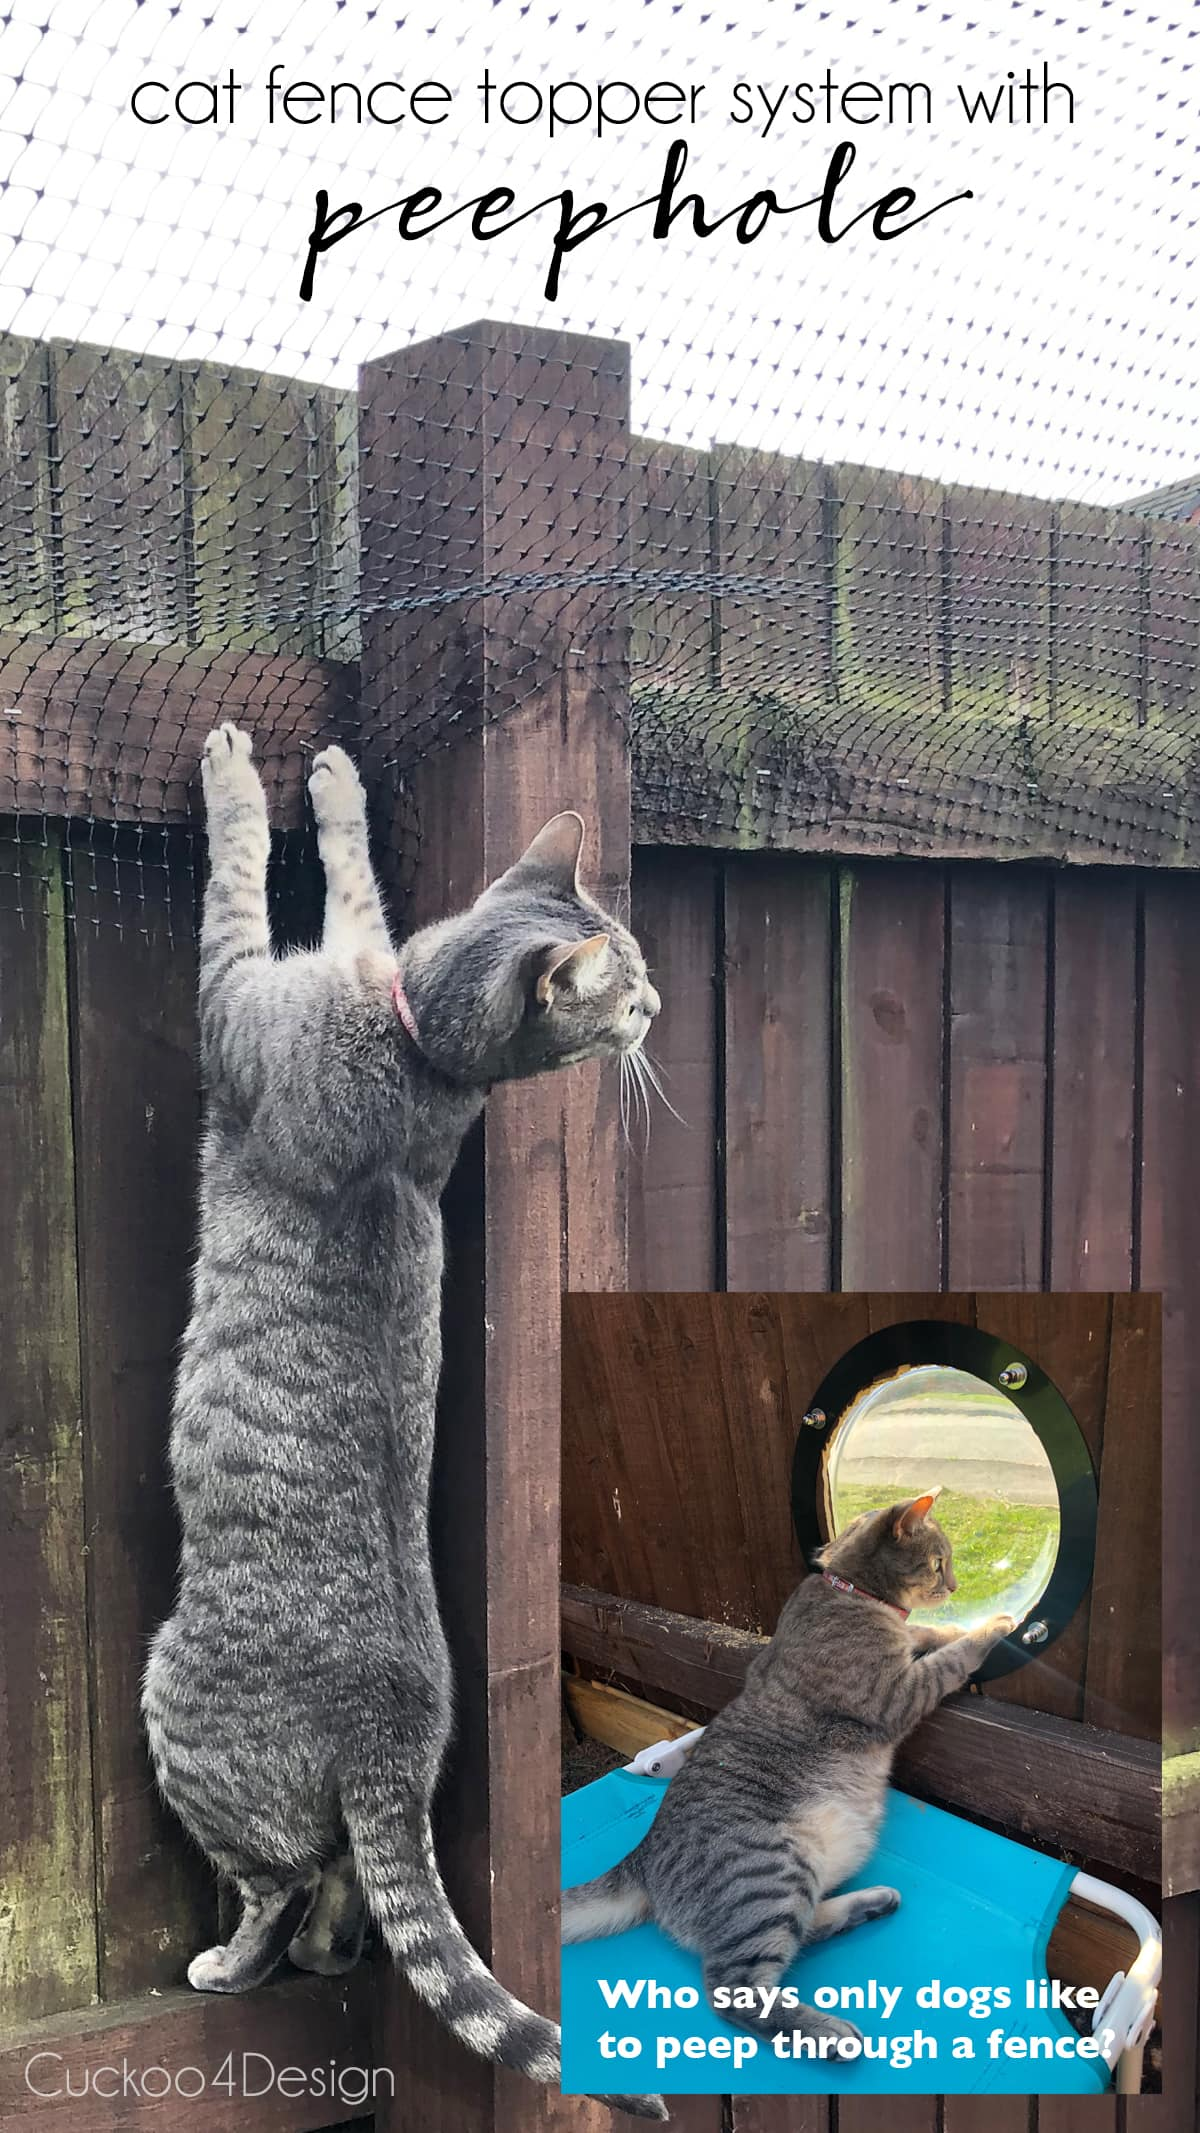 view of cat climbing the fence and peeping through the fence